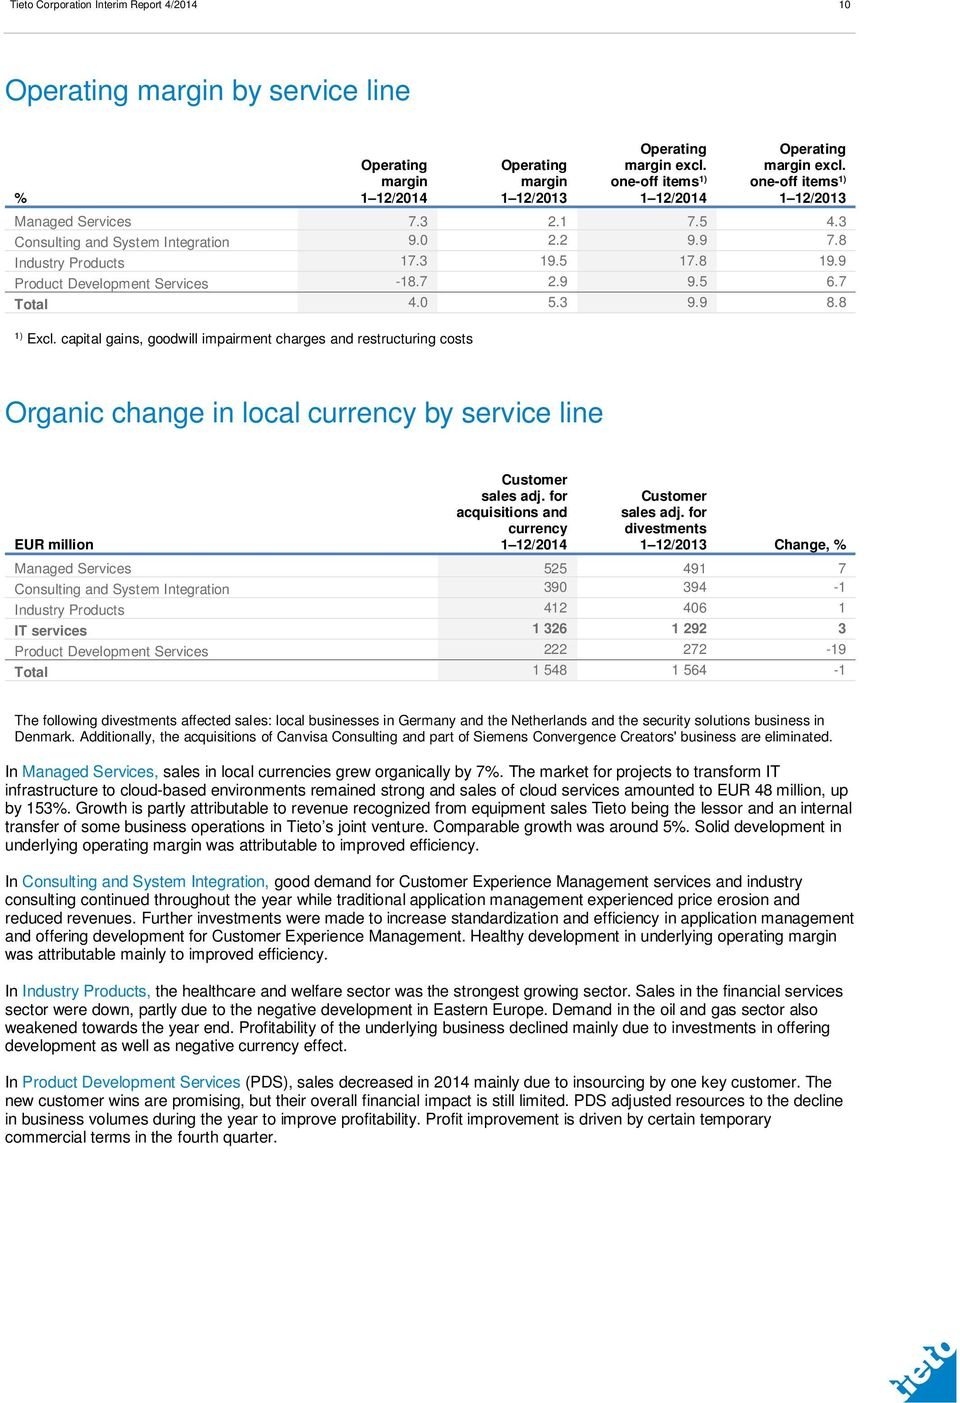 0 5.3 9.9 8.8 1) Excl. capital gains, goodwill impairment charges and restructuring costs Organic change in local currency by service line EUR million Customer sales adj.